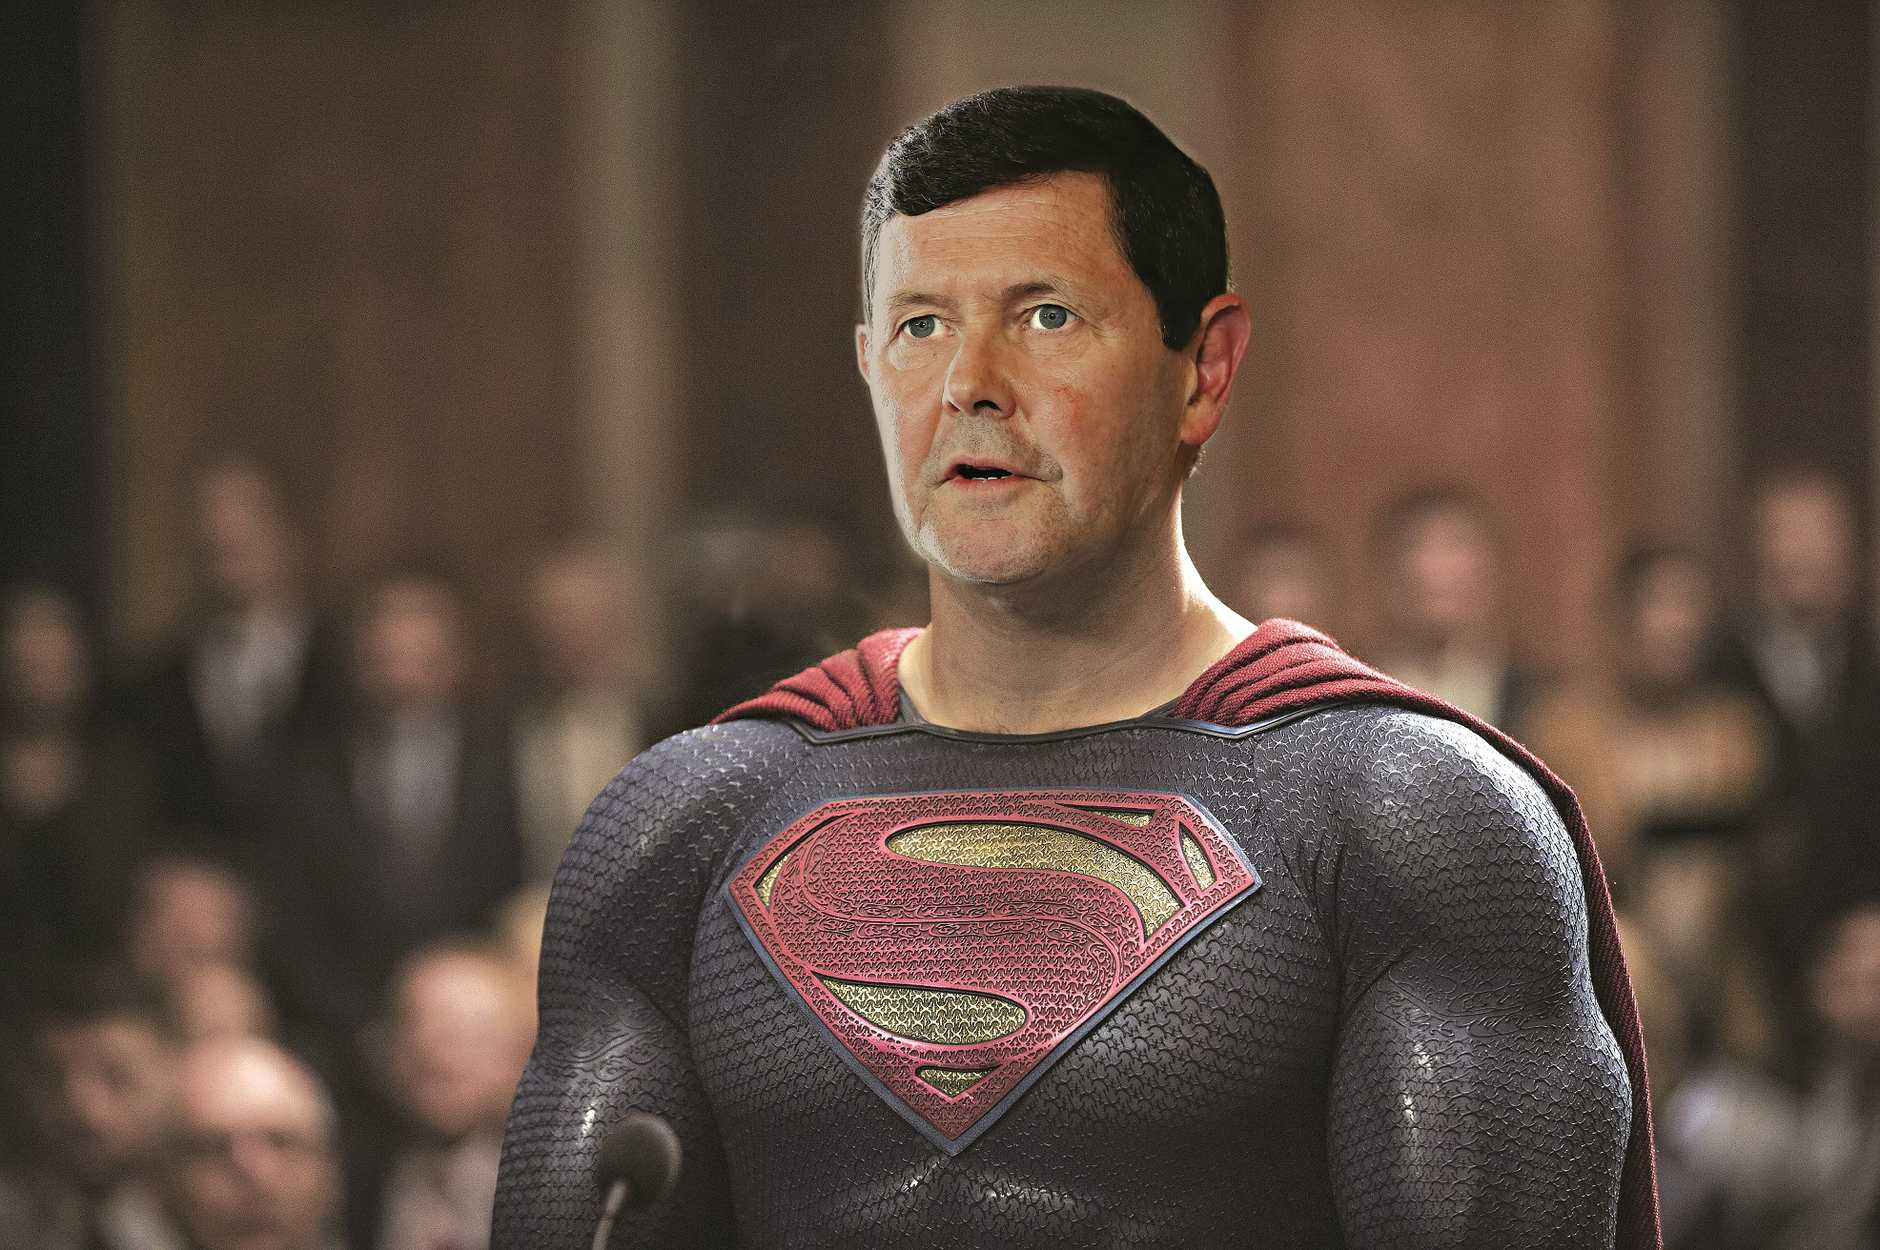 Kevin Andrews to the rescue. Reluctantly, of course.